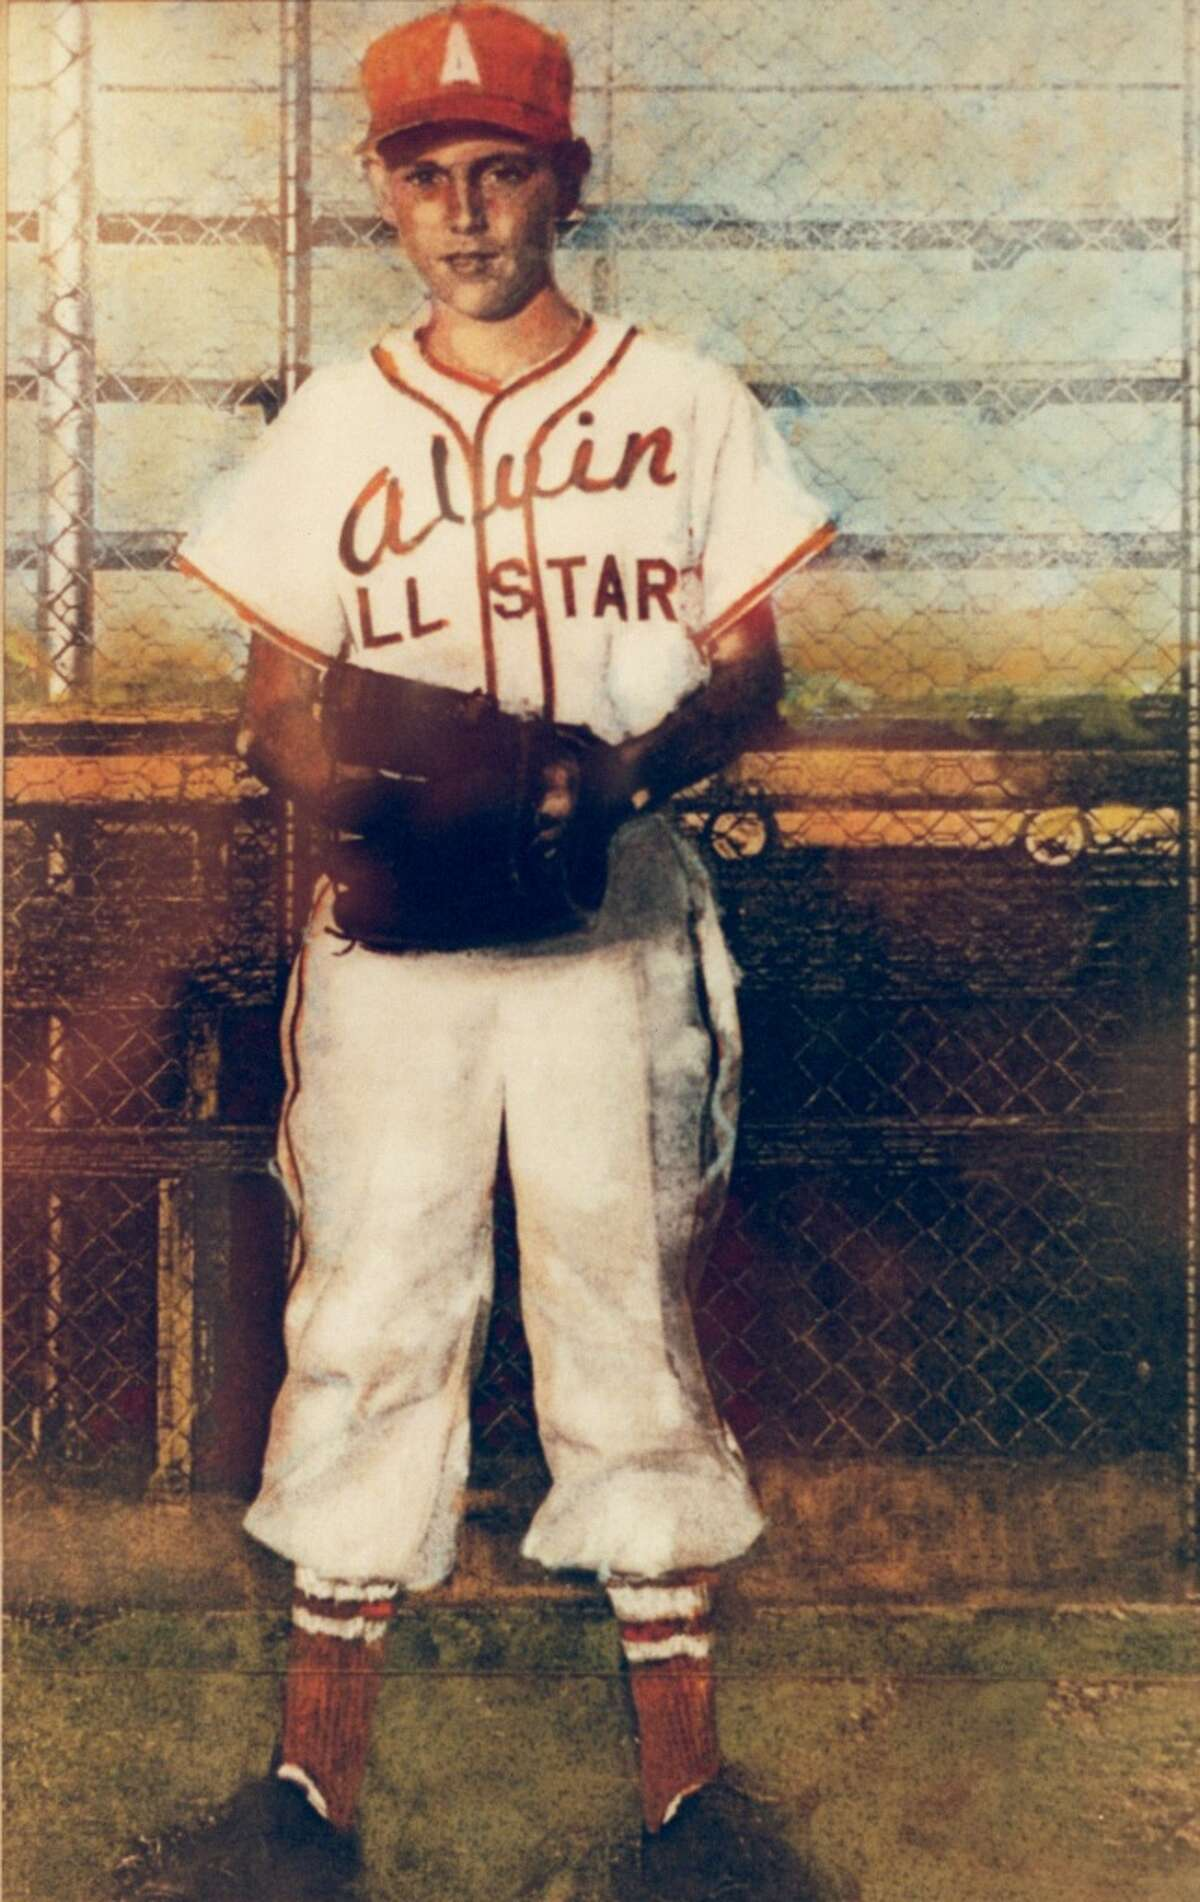 Shown here in an illustration, The Ryan Express was a Little League All-Star in his hometown of Alvin.